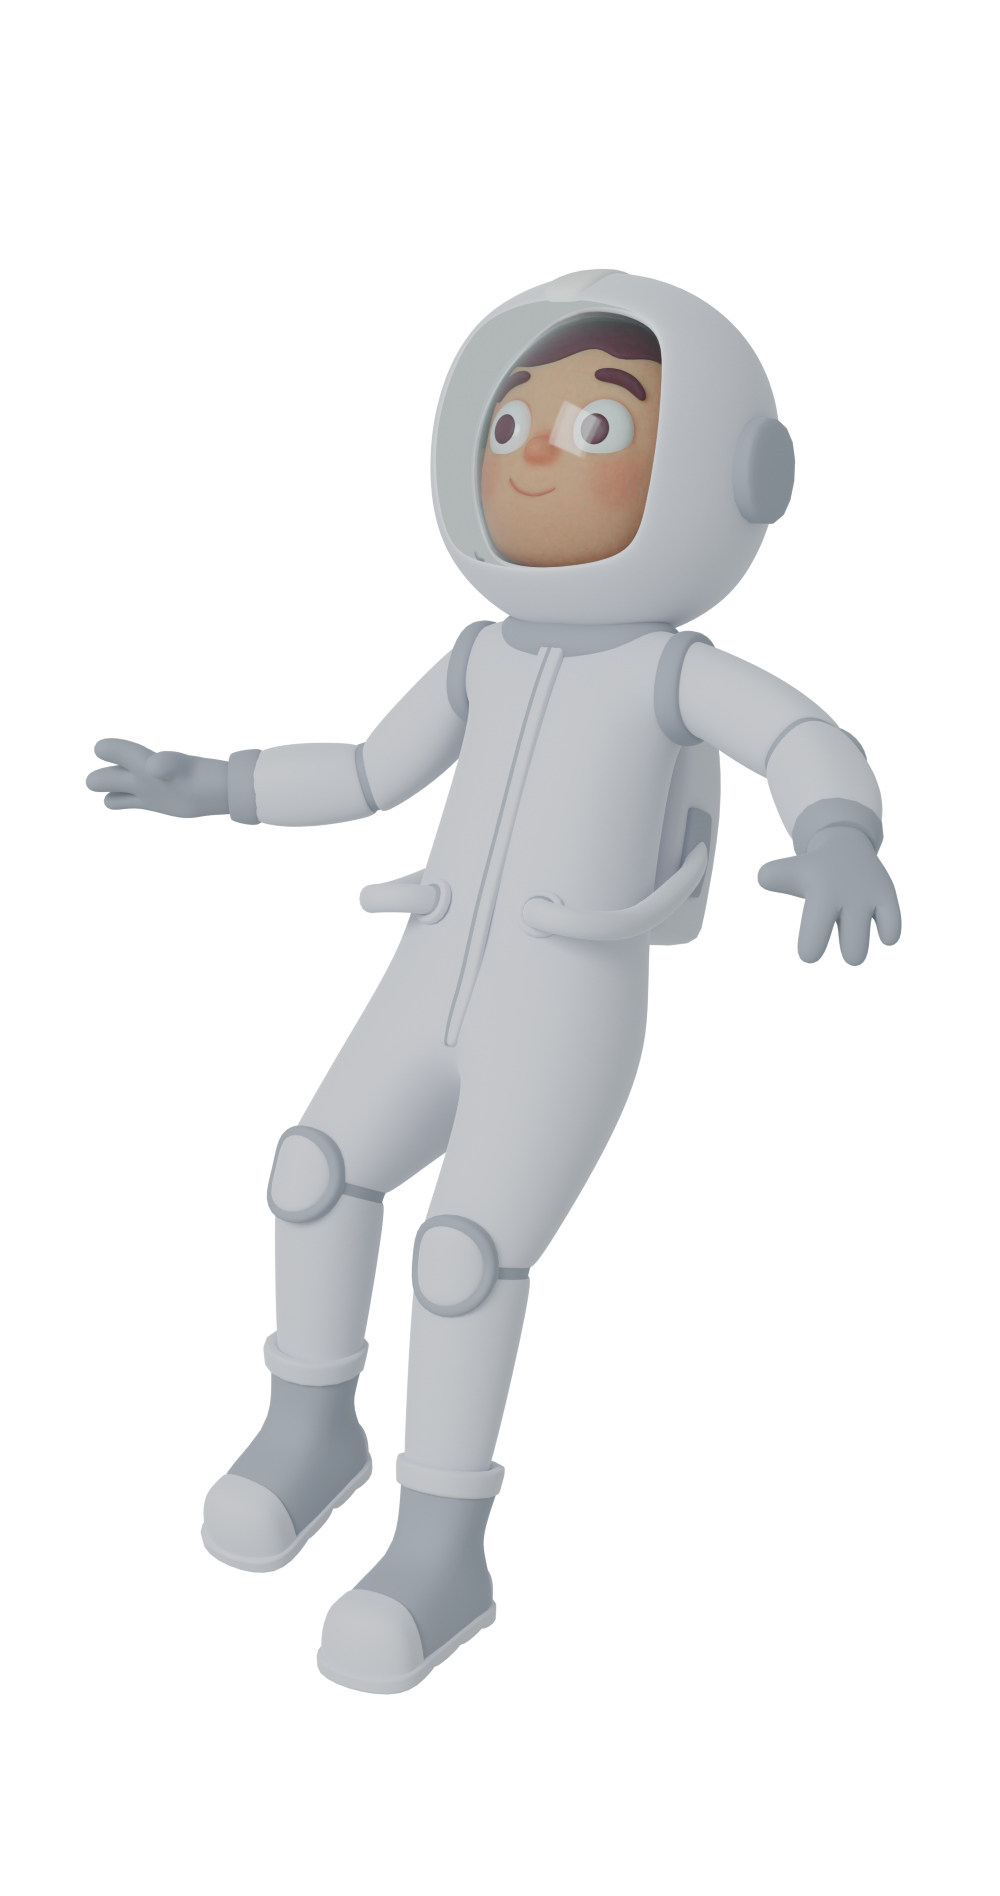 3d character design of an astronaut floating